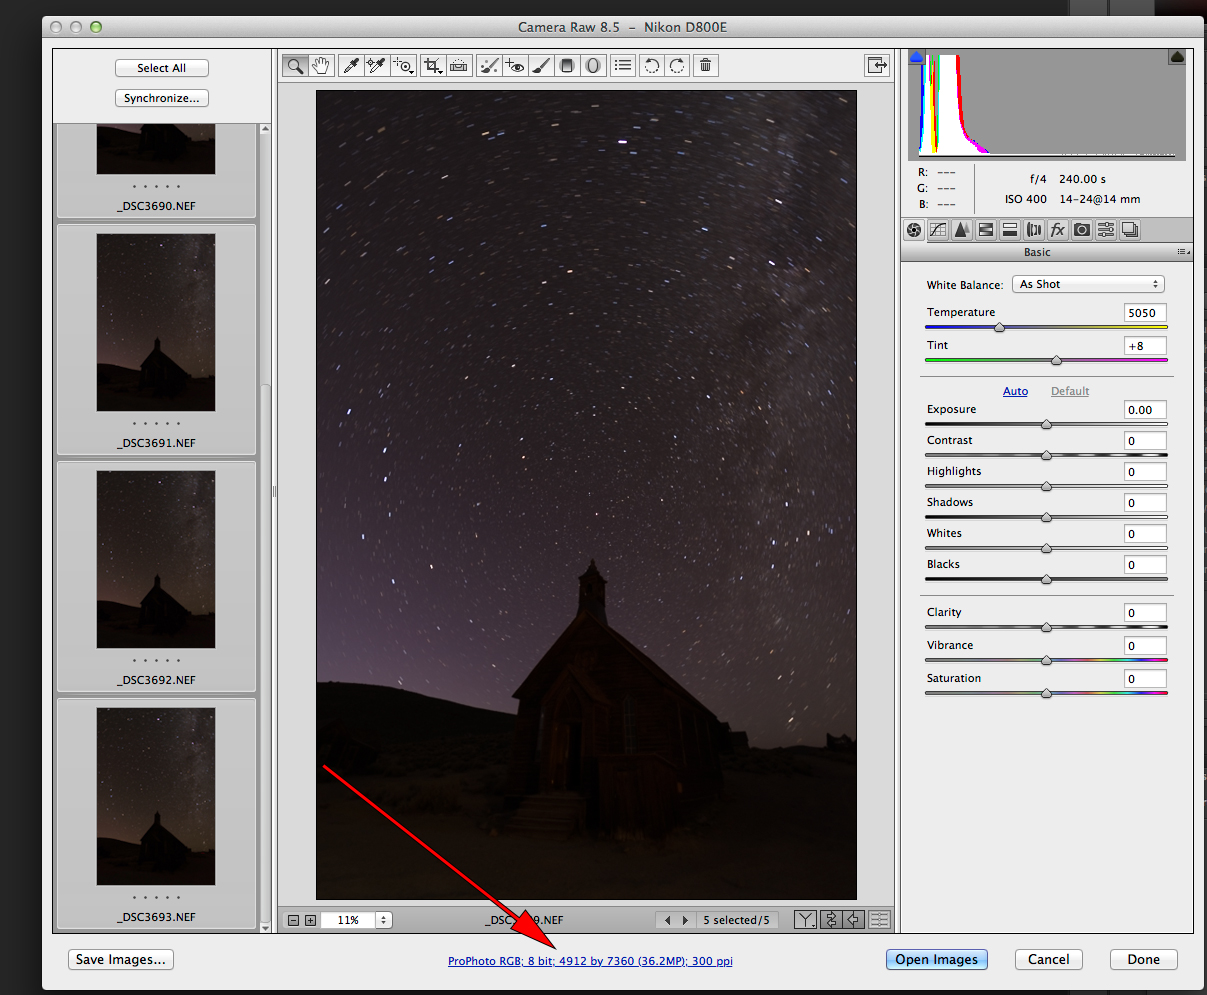 how to turn on adobe camera after clicking deny